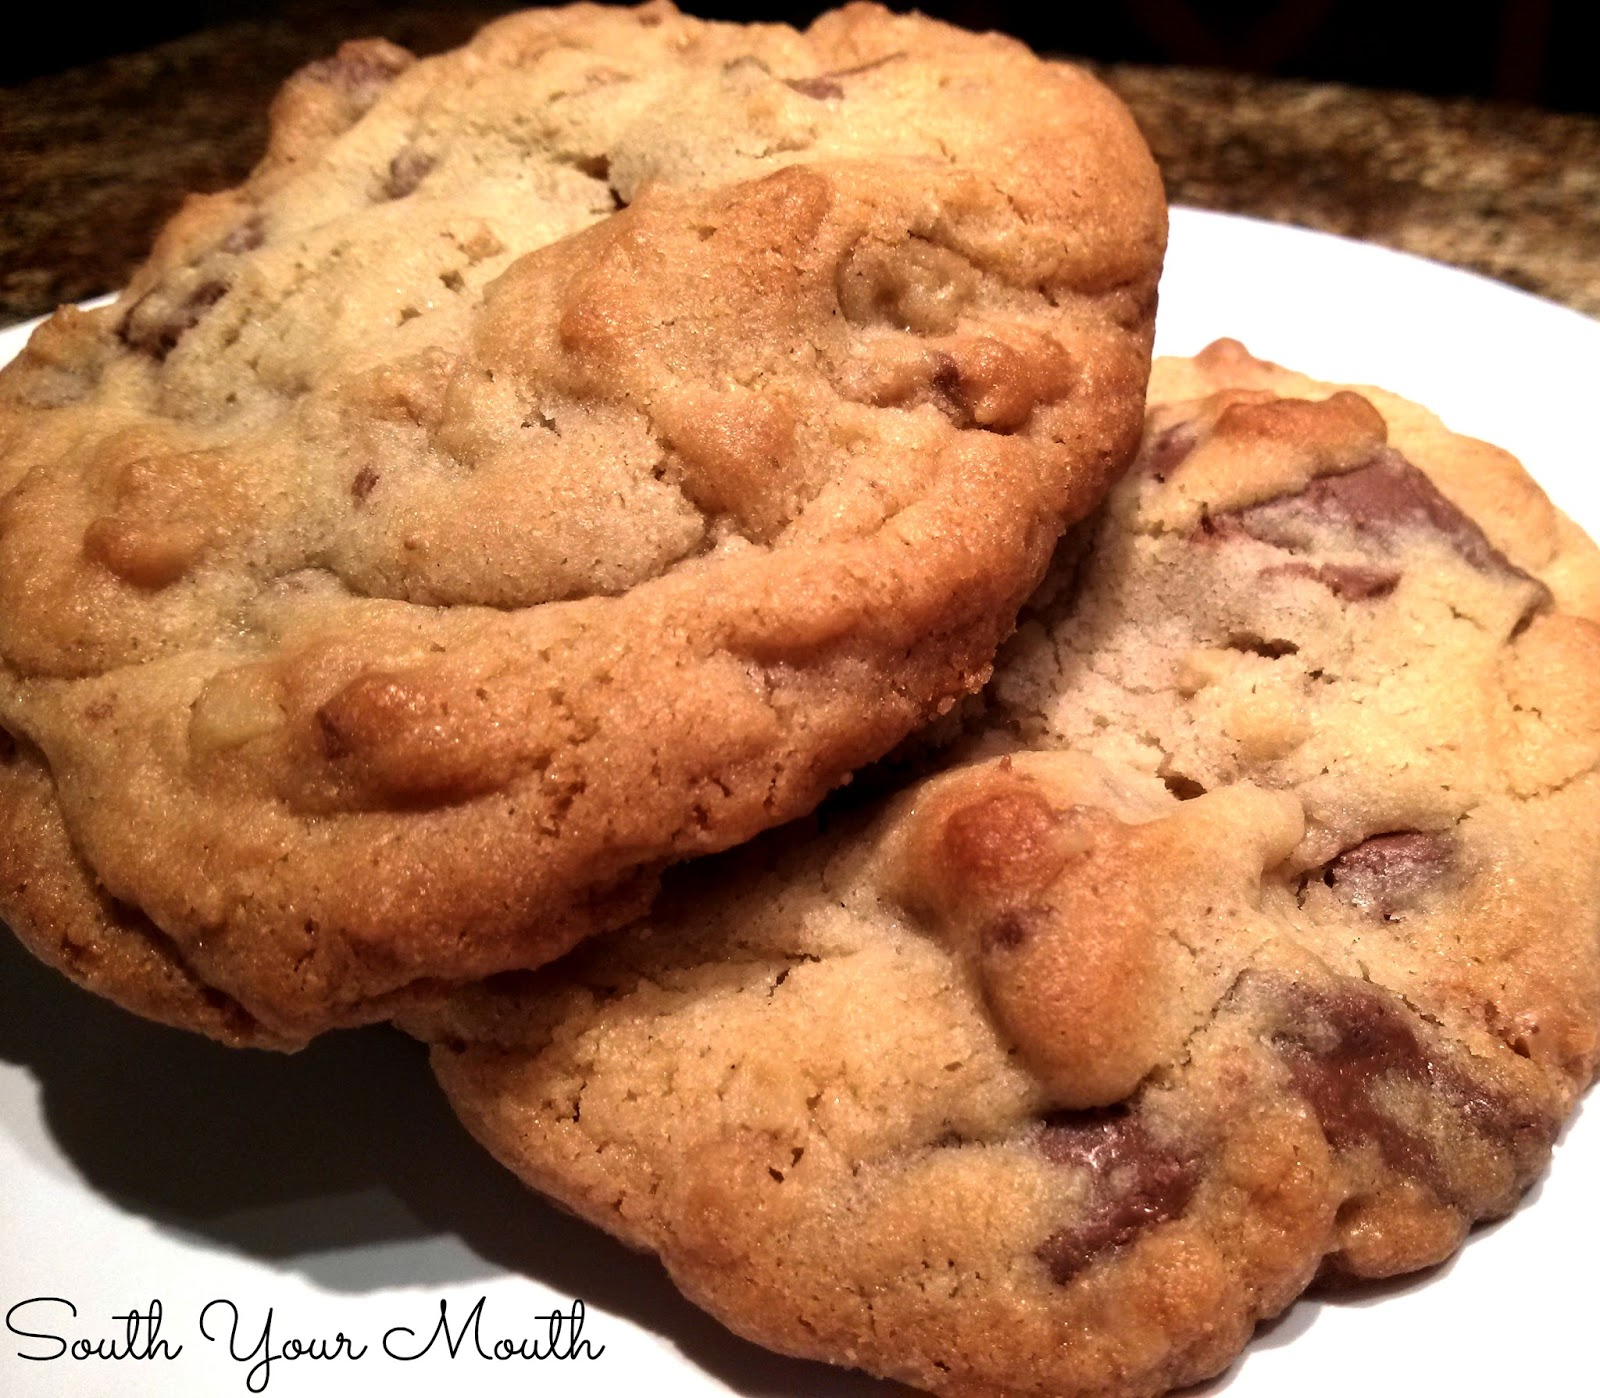 South Your Mouth: Chocolate Chunk Cookies